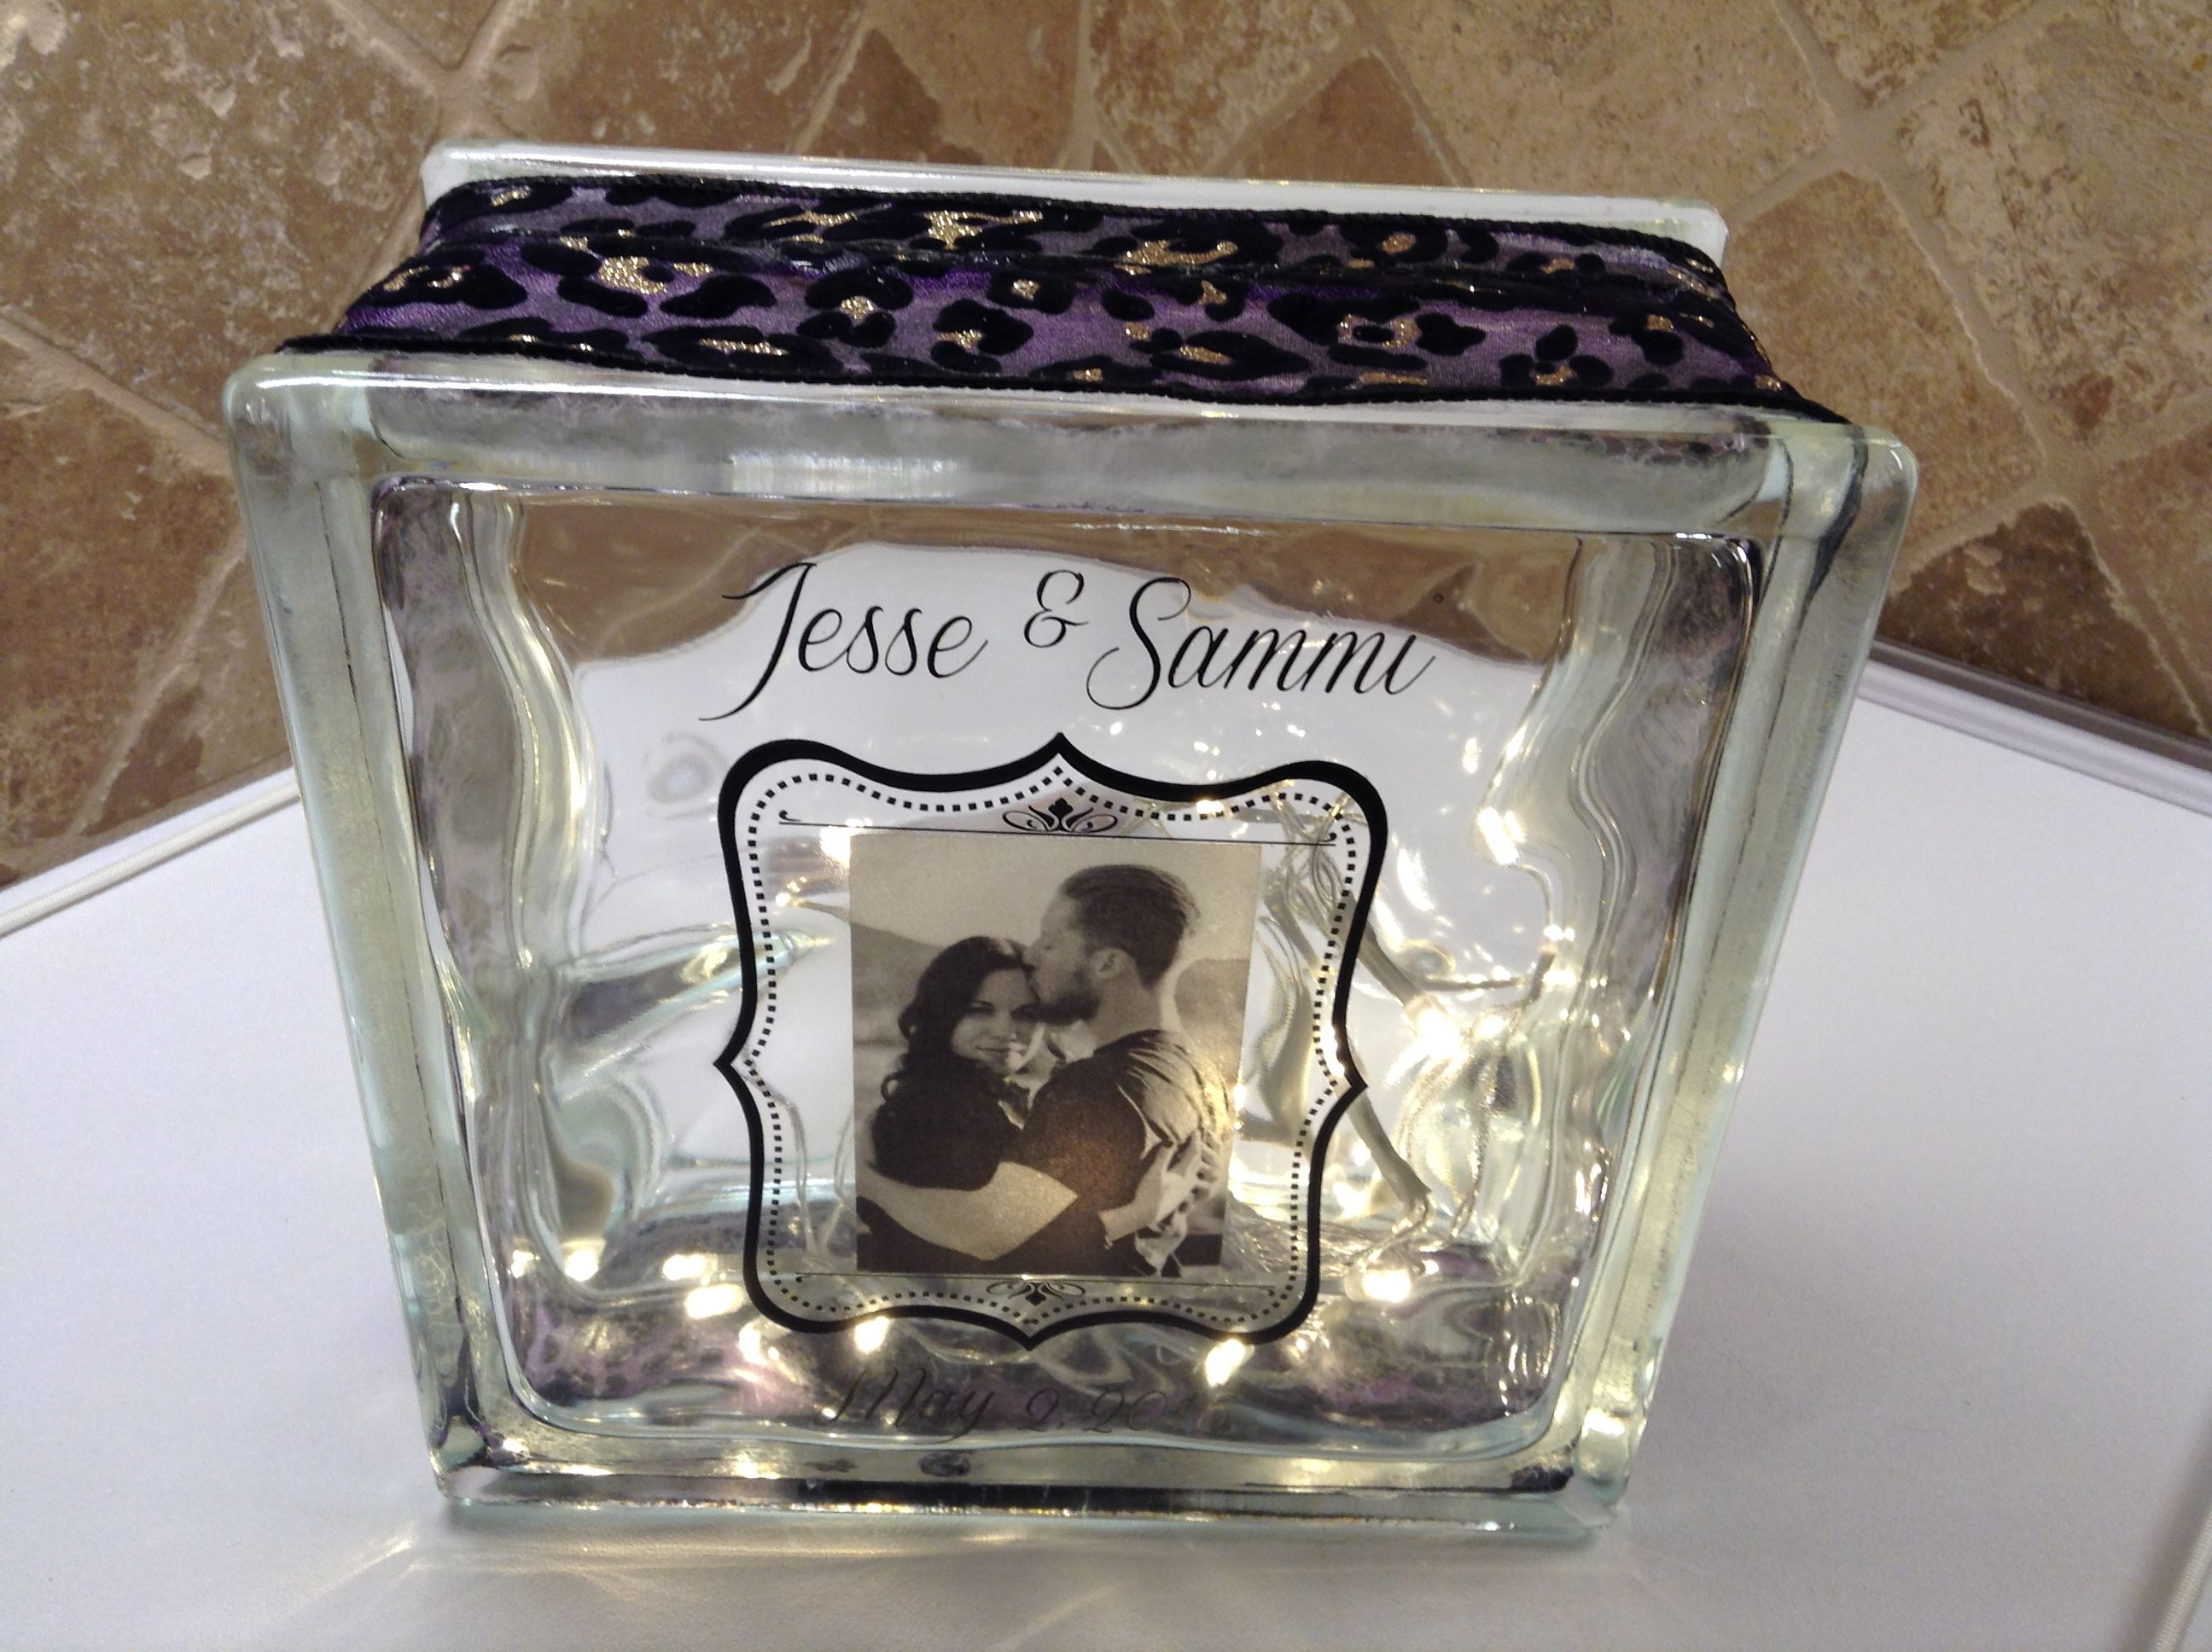 SPECIAL ORDER GLASS LIGHT BLOCK WITH LASER ETCHED BRIDGE/GROOM DETAILS, PURPLE/BLACK CHEETAH RIBBON EMBELLISHMENT, PERSONAL PHOTO AND WARM LED BATTERY OPERATED LIGHTS.